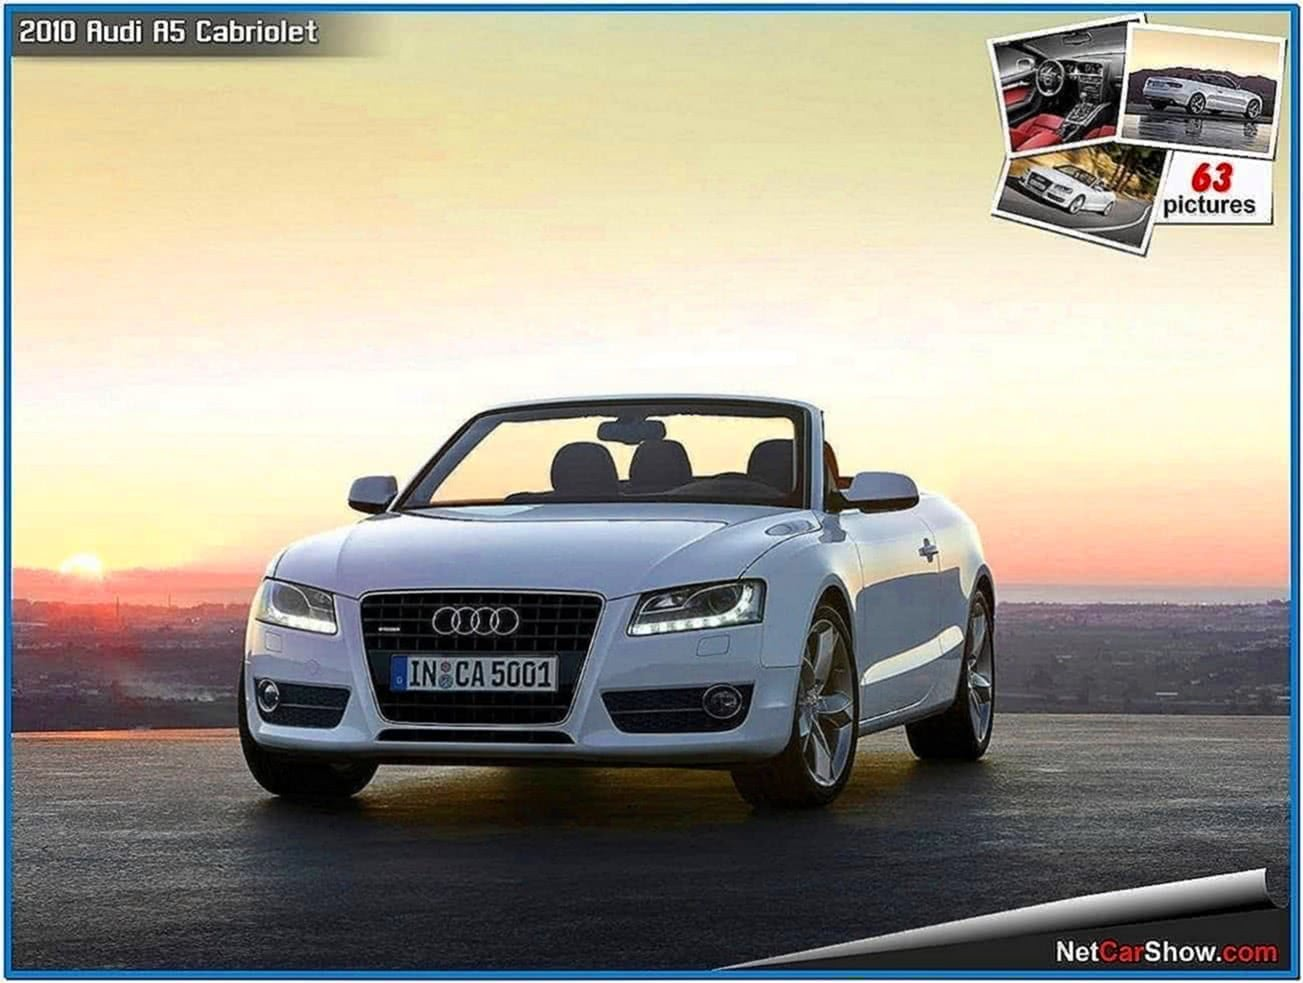 Audi A5 Cabriolet Screensaver